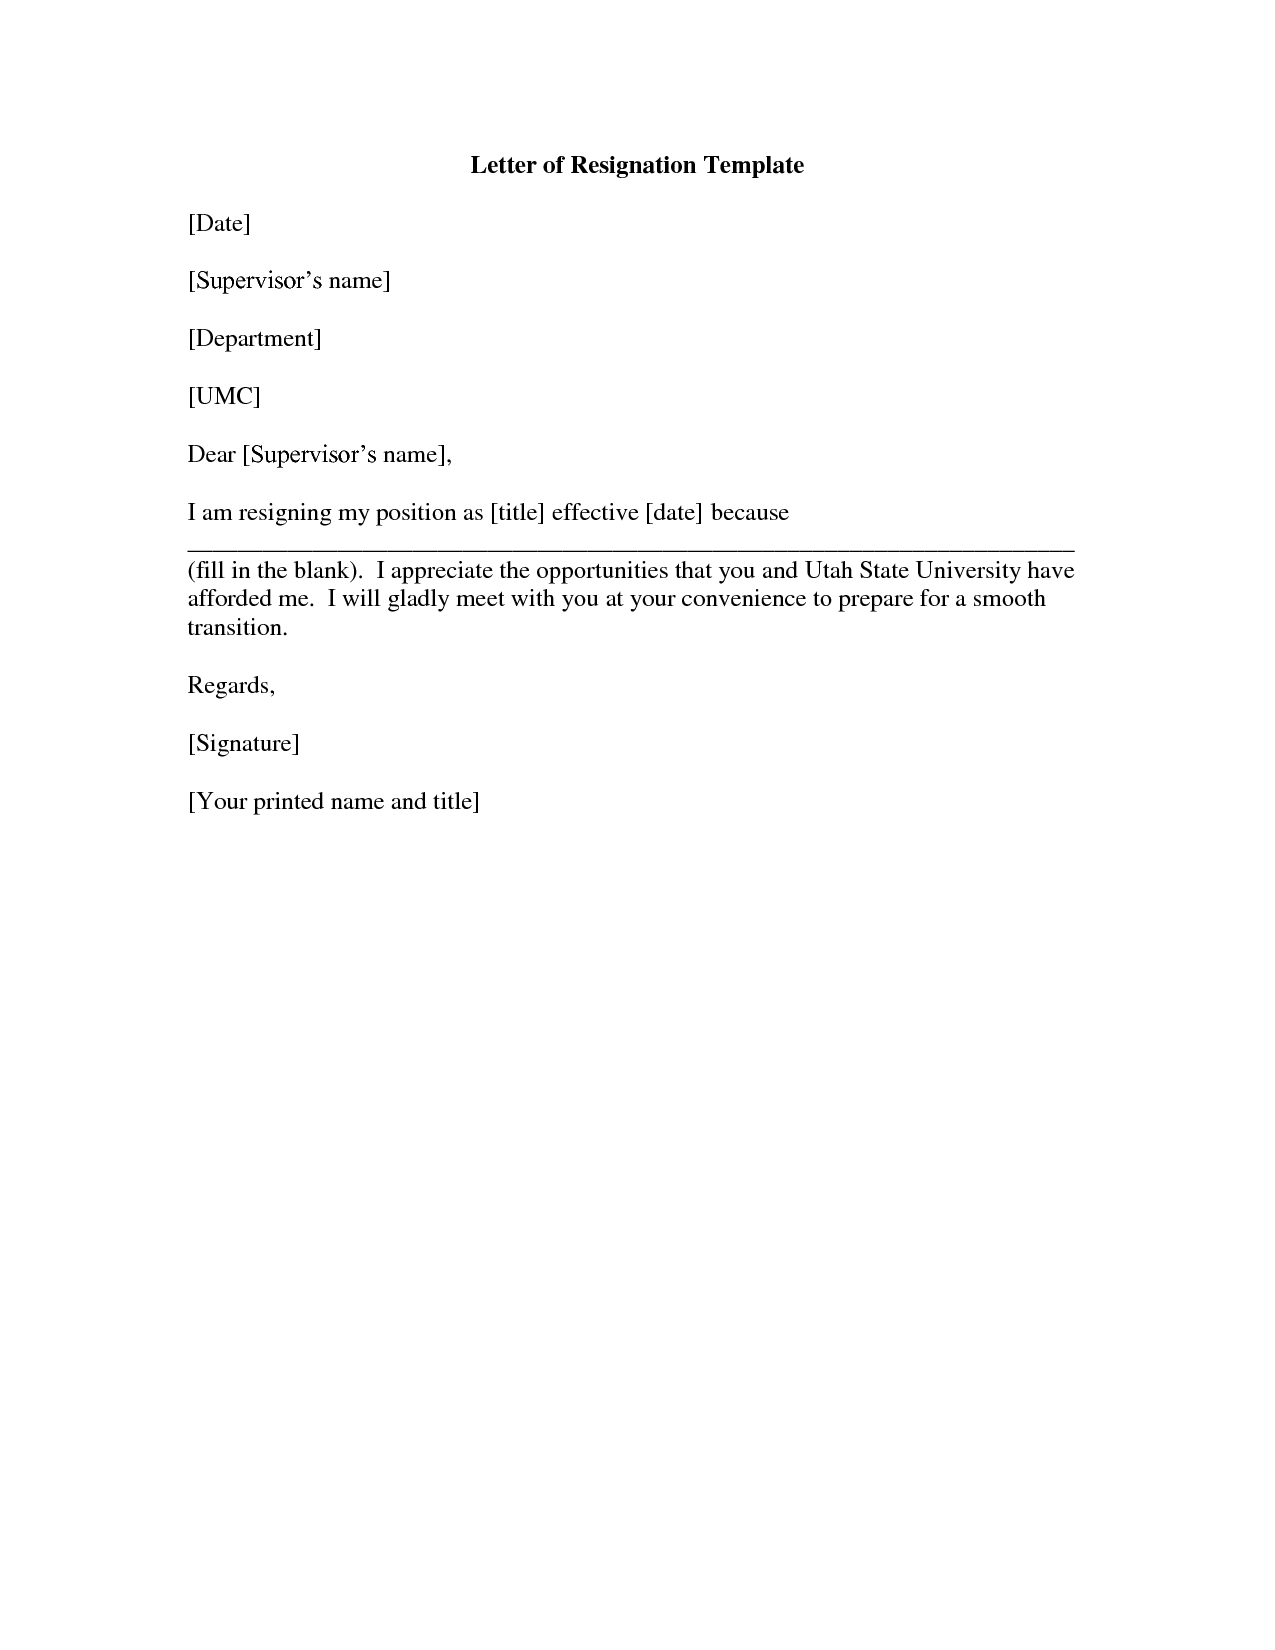 Printable Sample Letter of Resignation Form – Formal Letter of Resignation